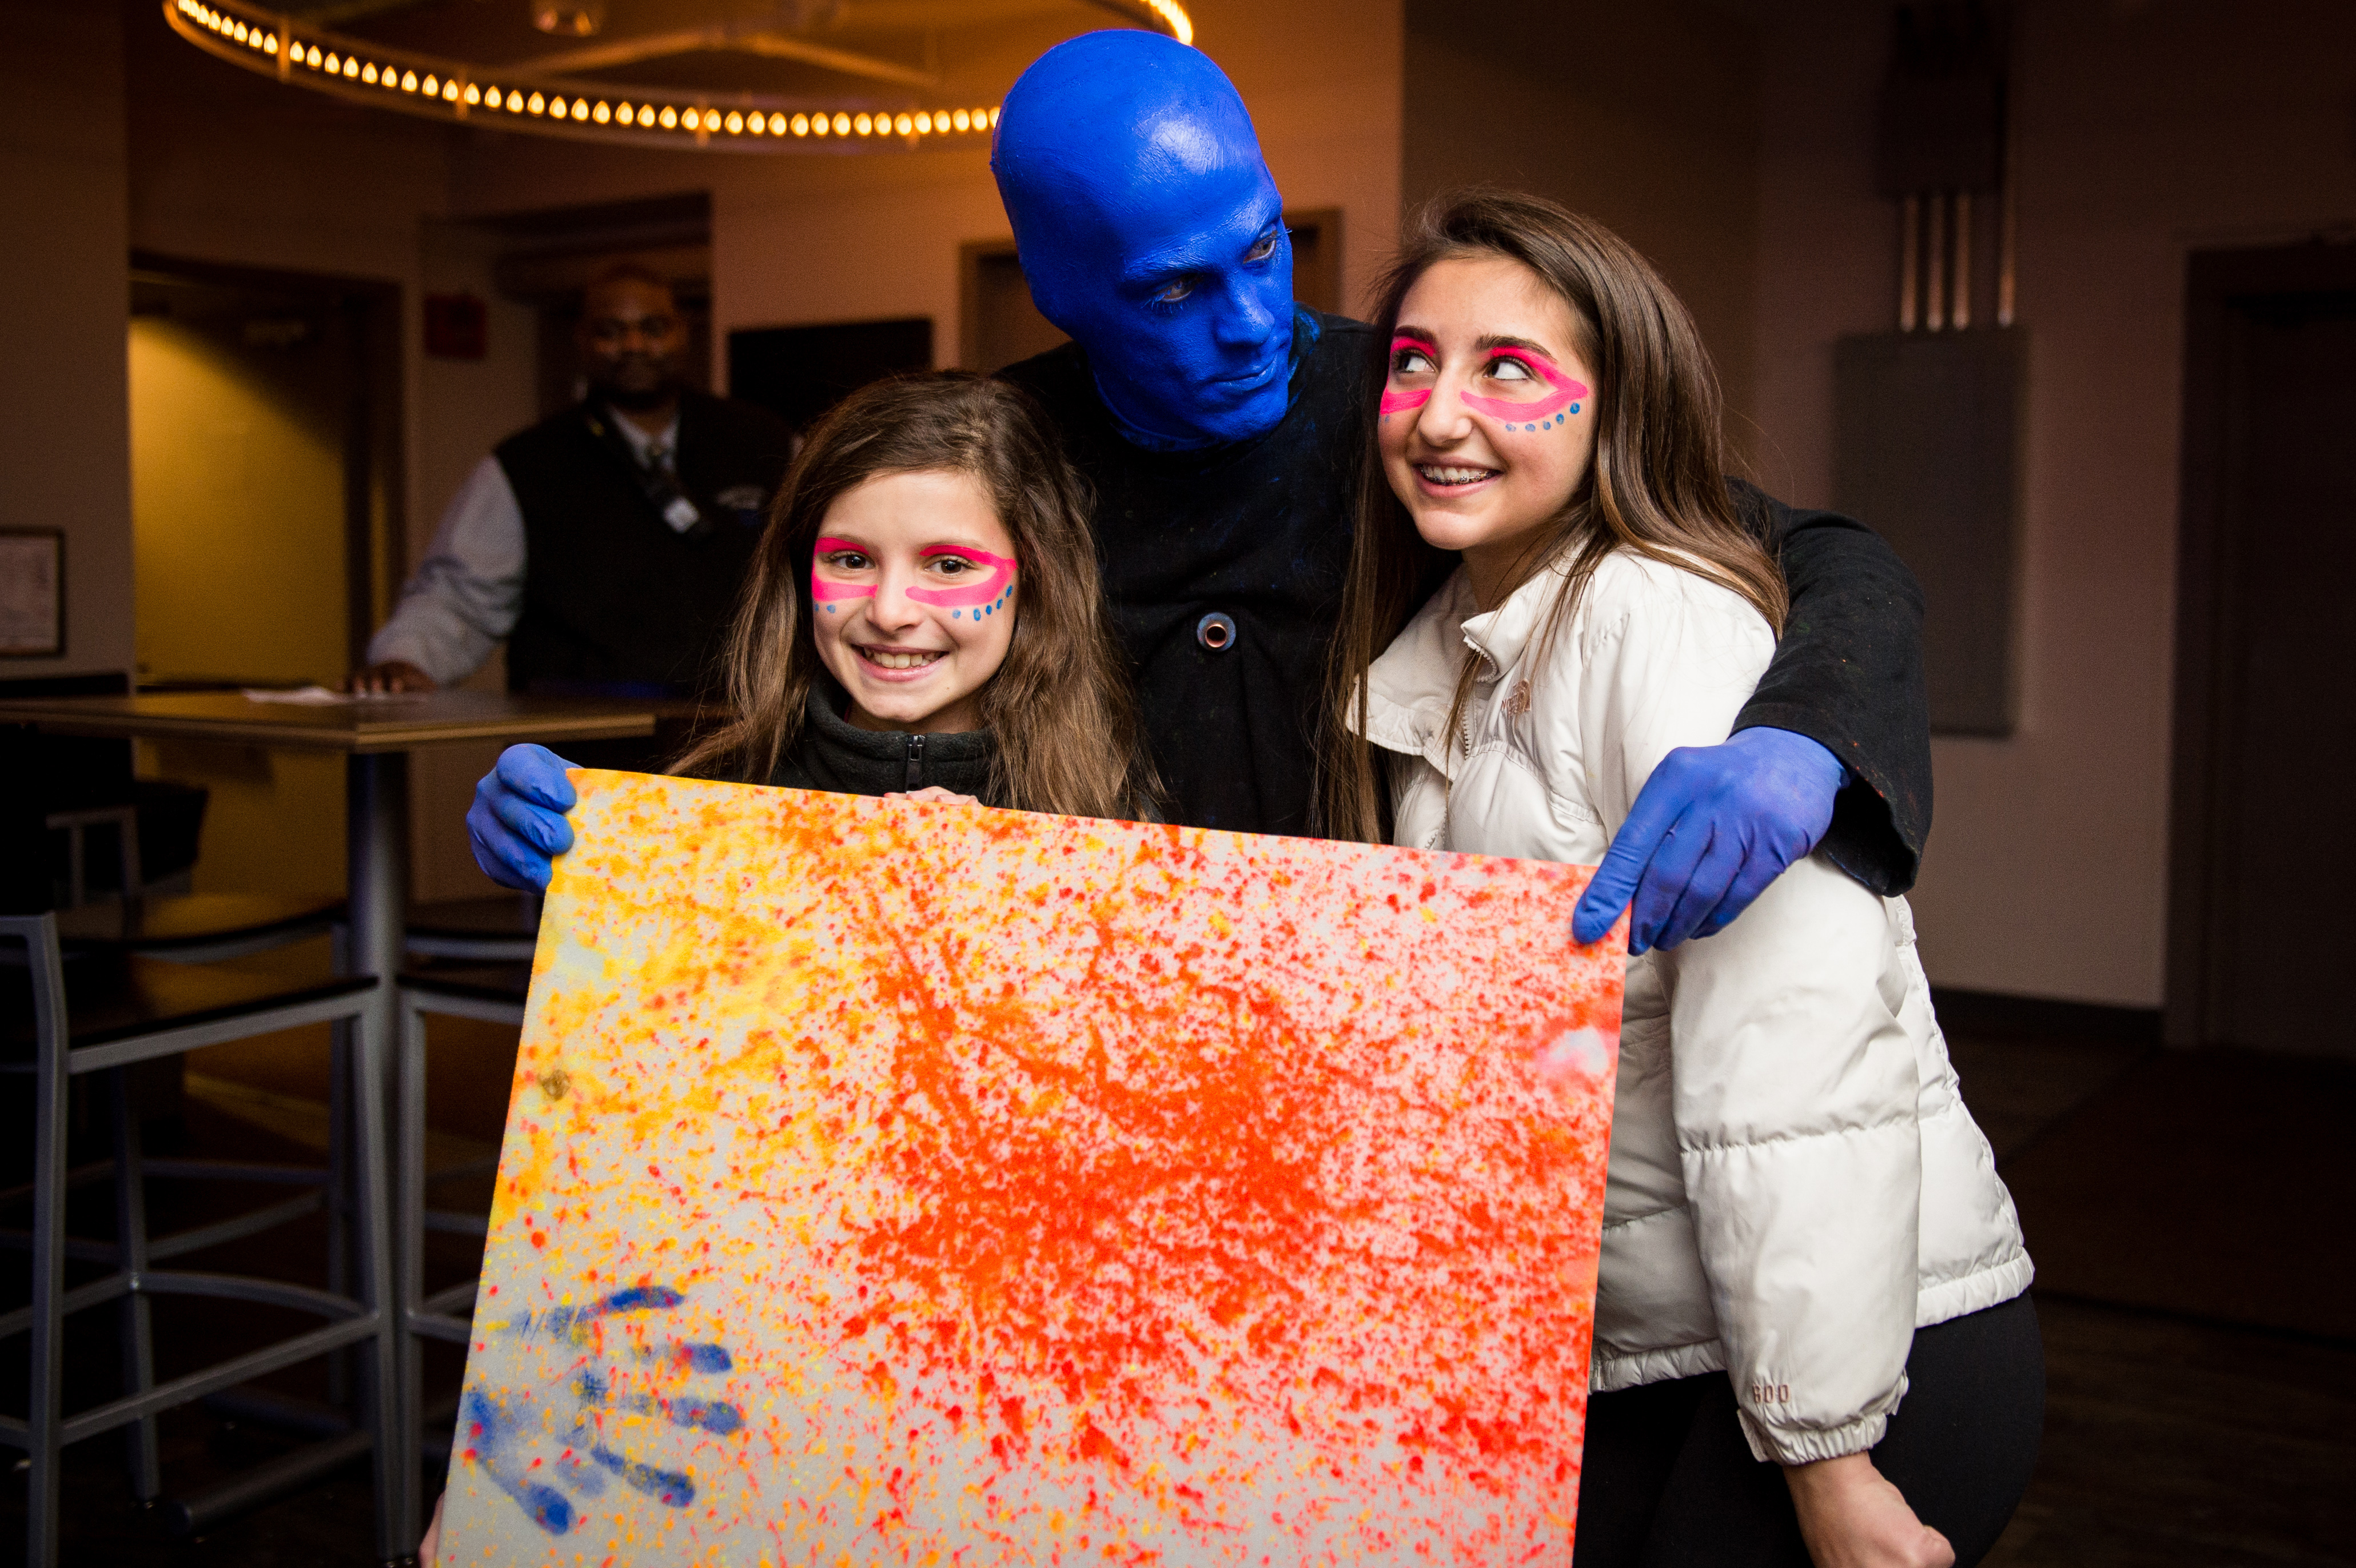 CTP3970 Blue Man Group Boston for Kids